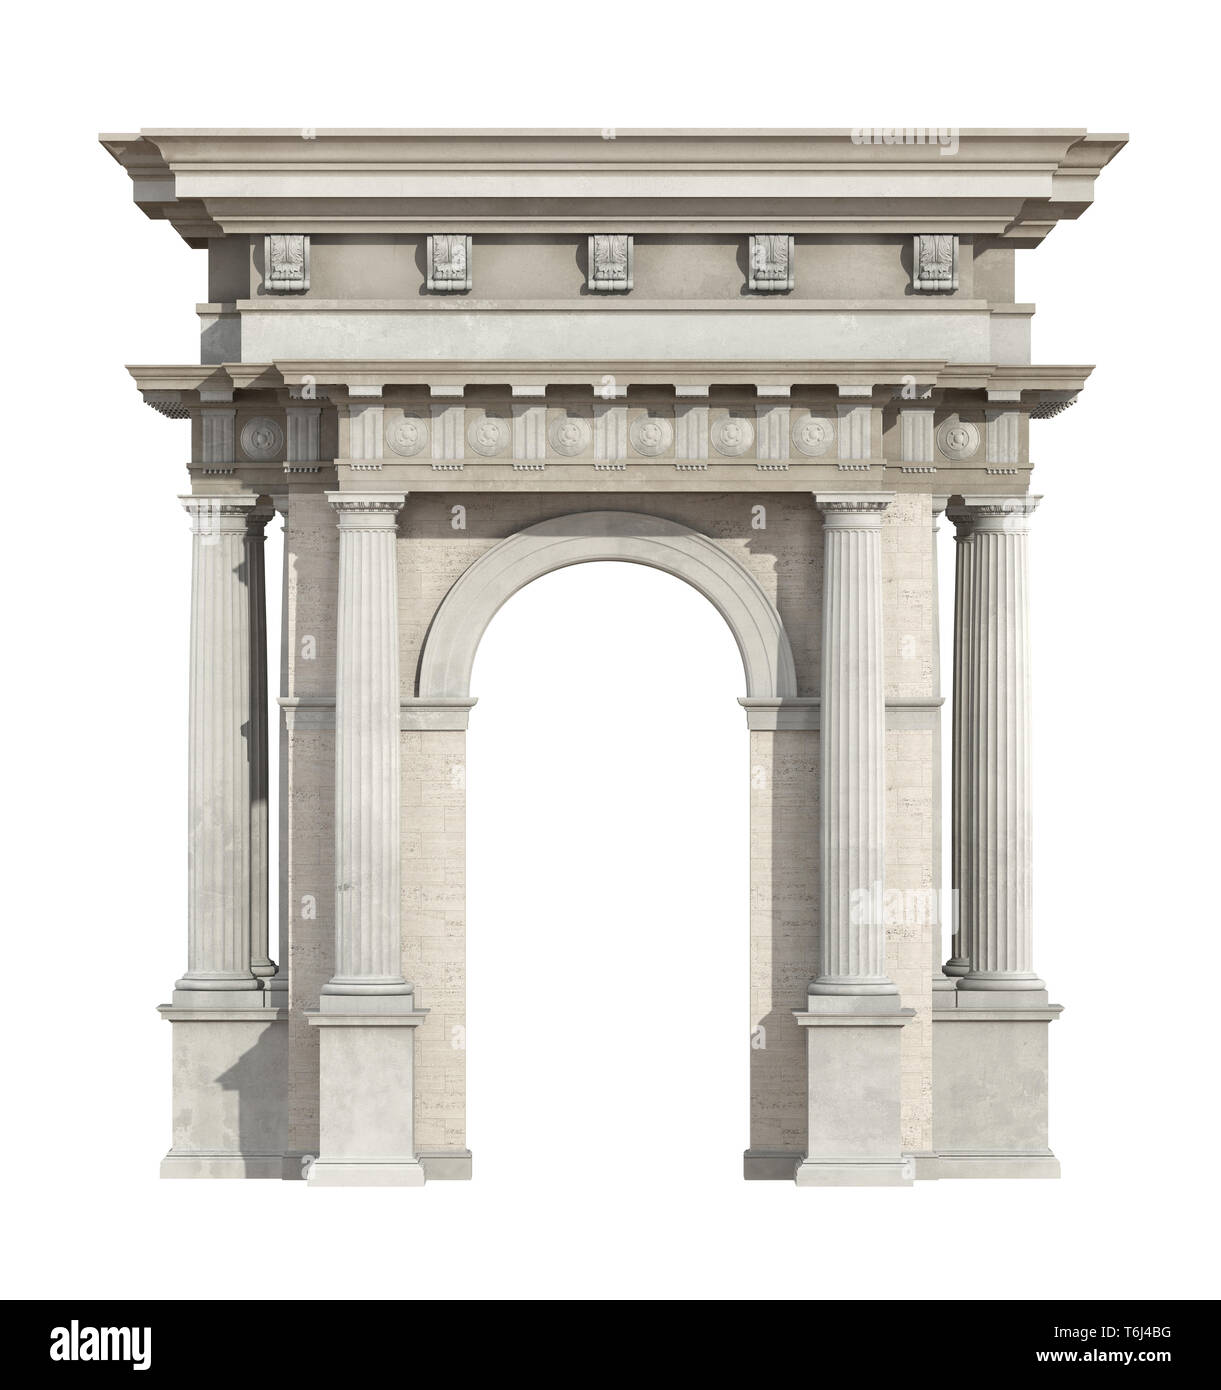 Portal in neoclassical style isolated on white with arch and doric column - 3d rendering - Stock Image